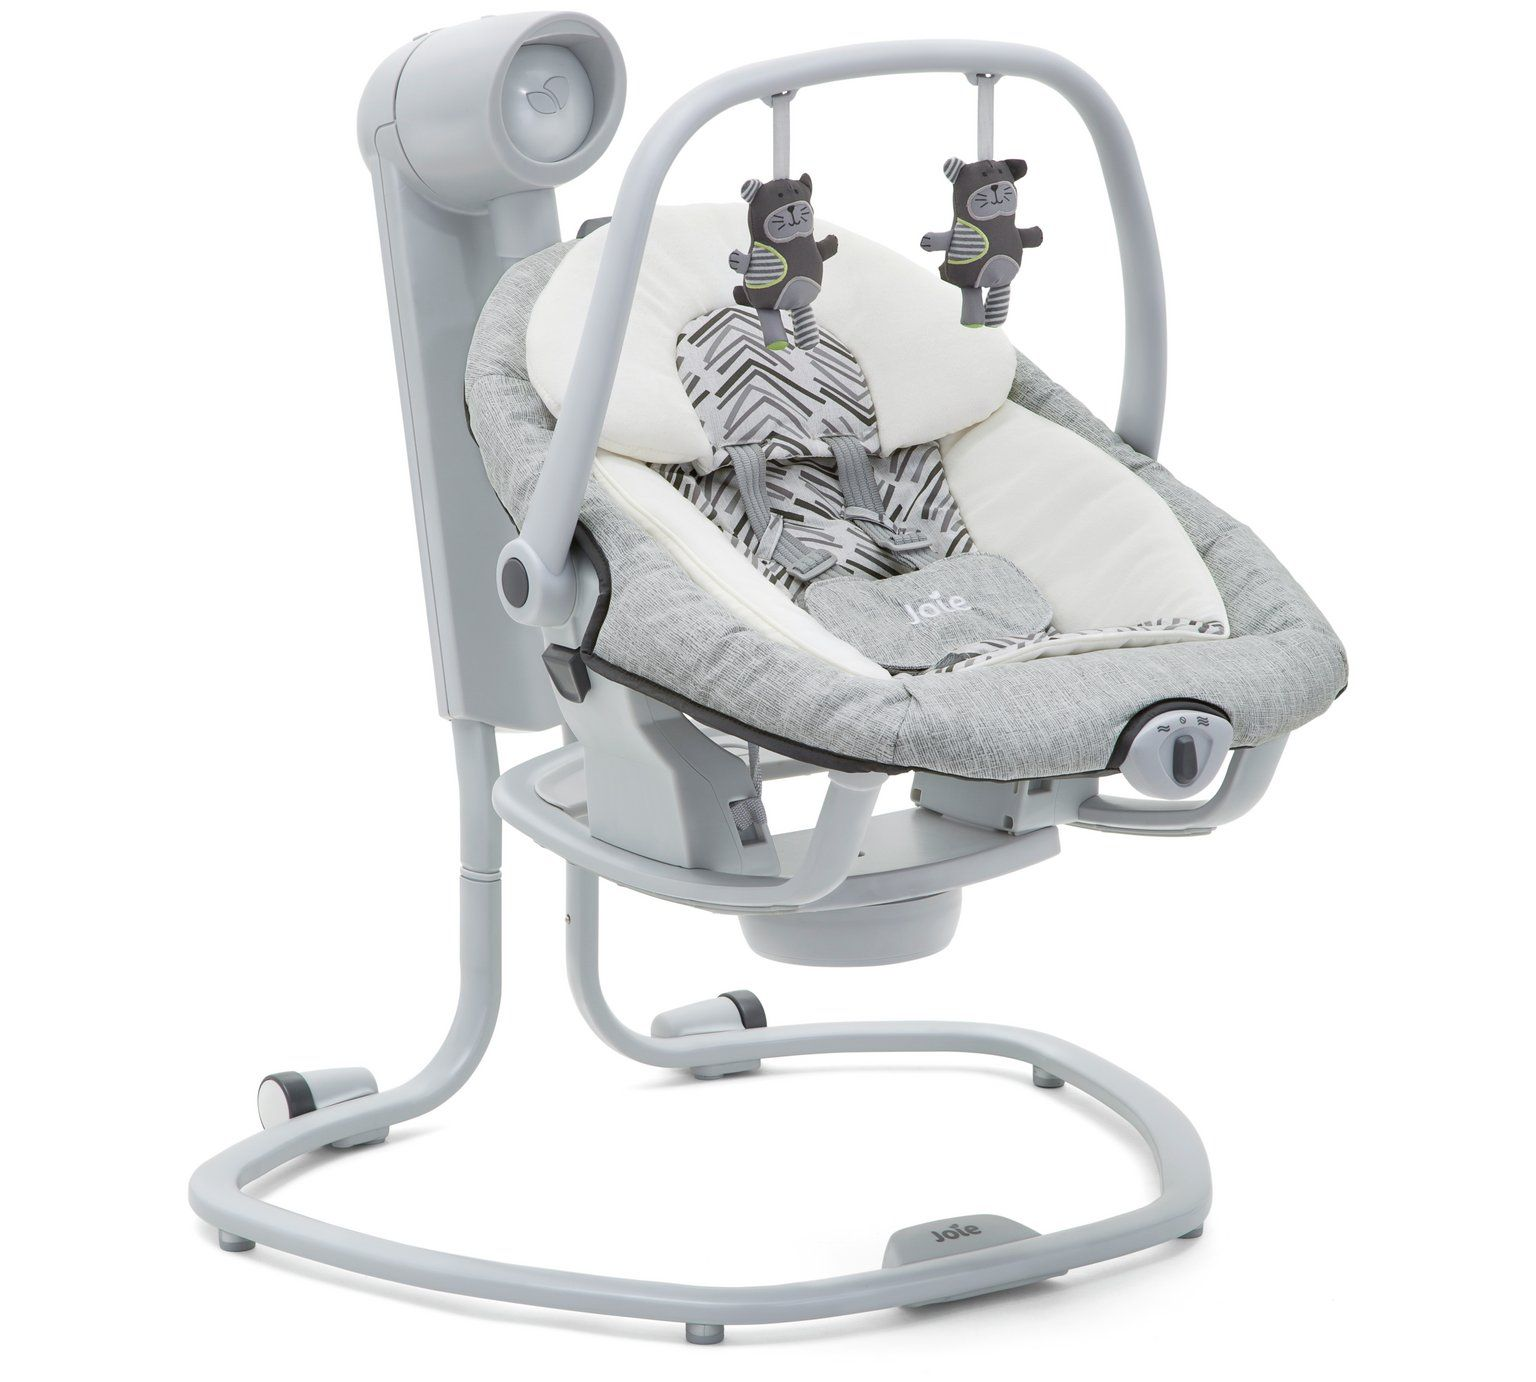 Joie Baby Swing Rocker Joie Serina 2 In 1 Swing Rocker Baby Swings Bouncers